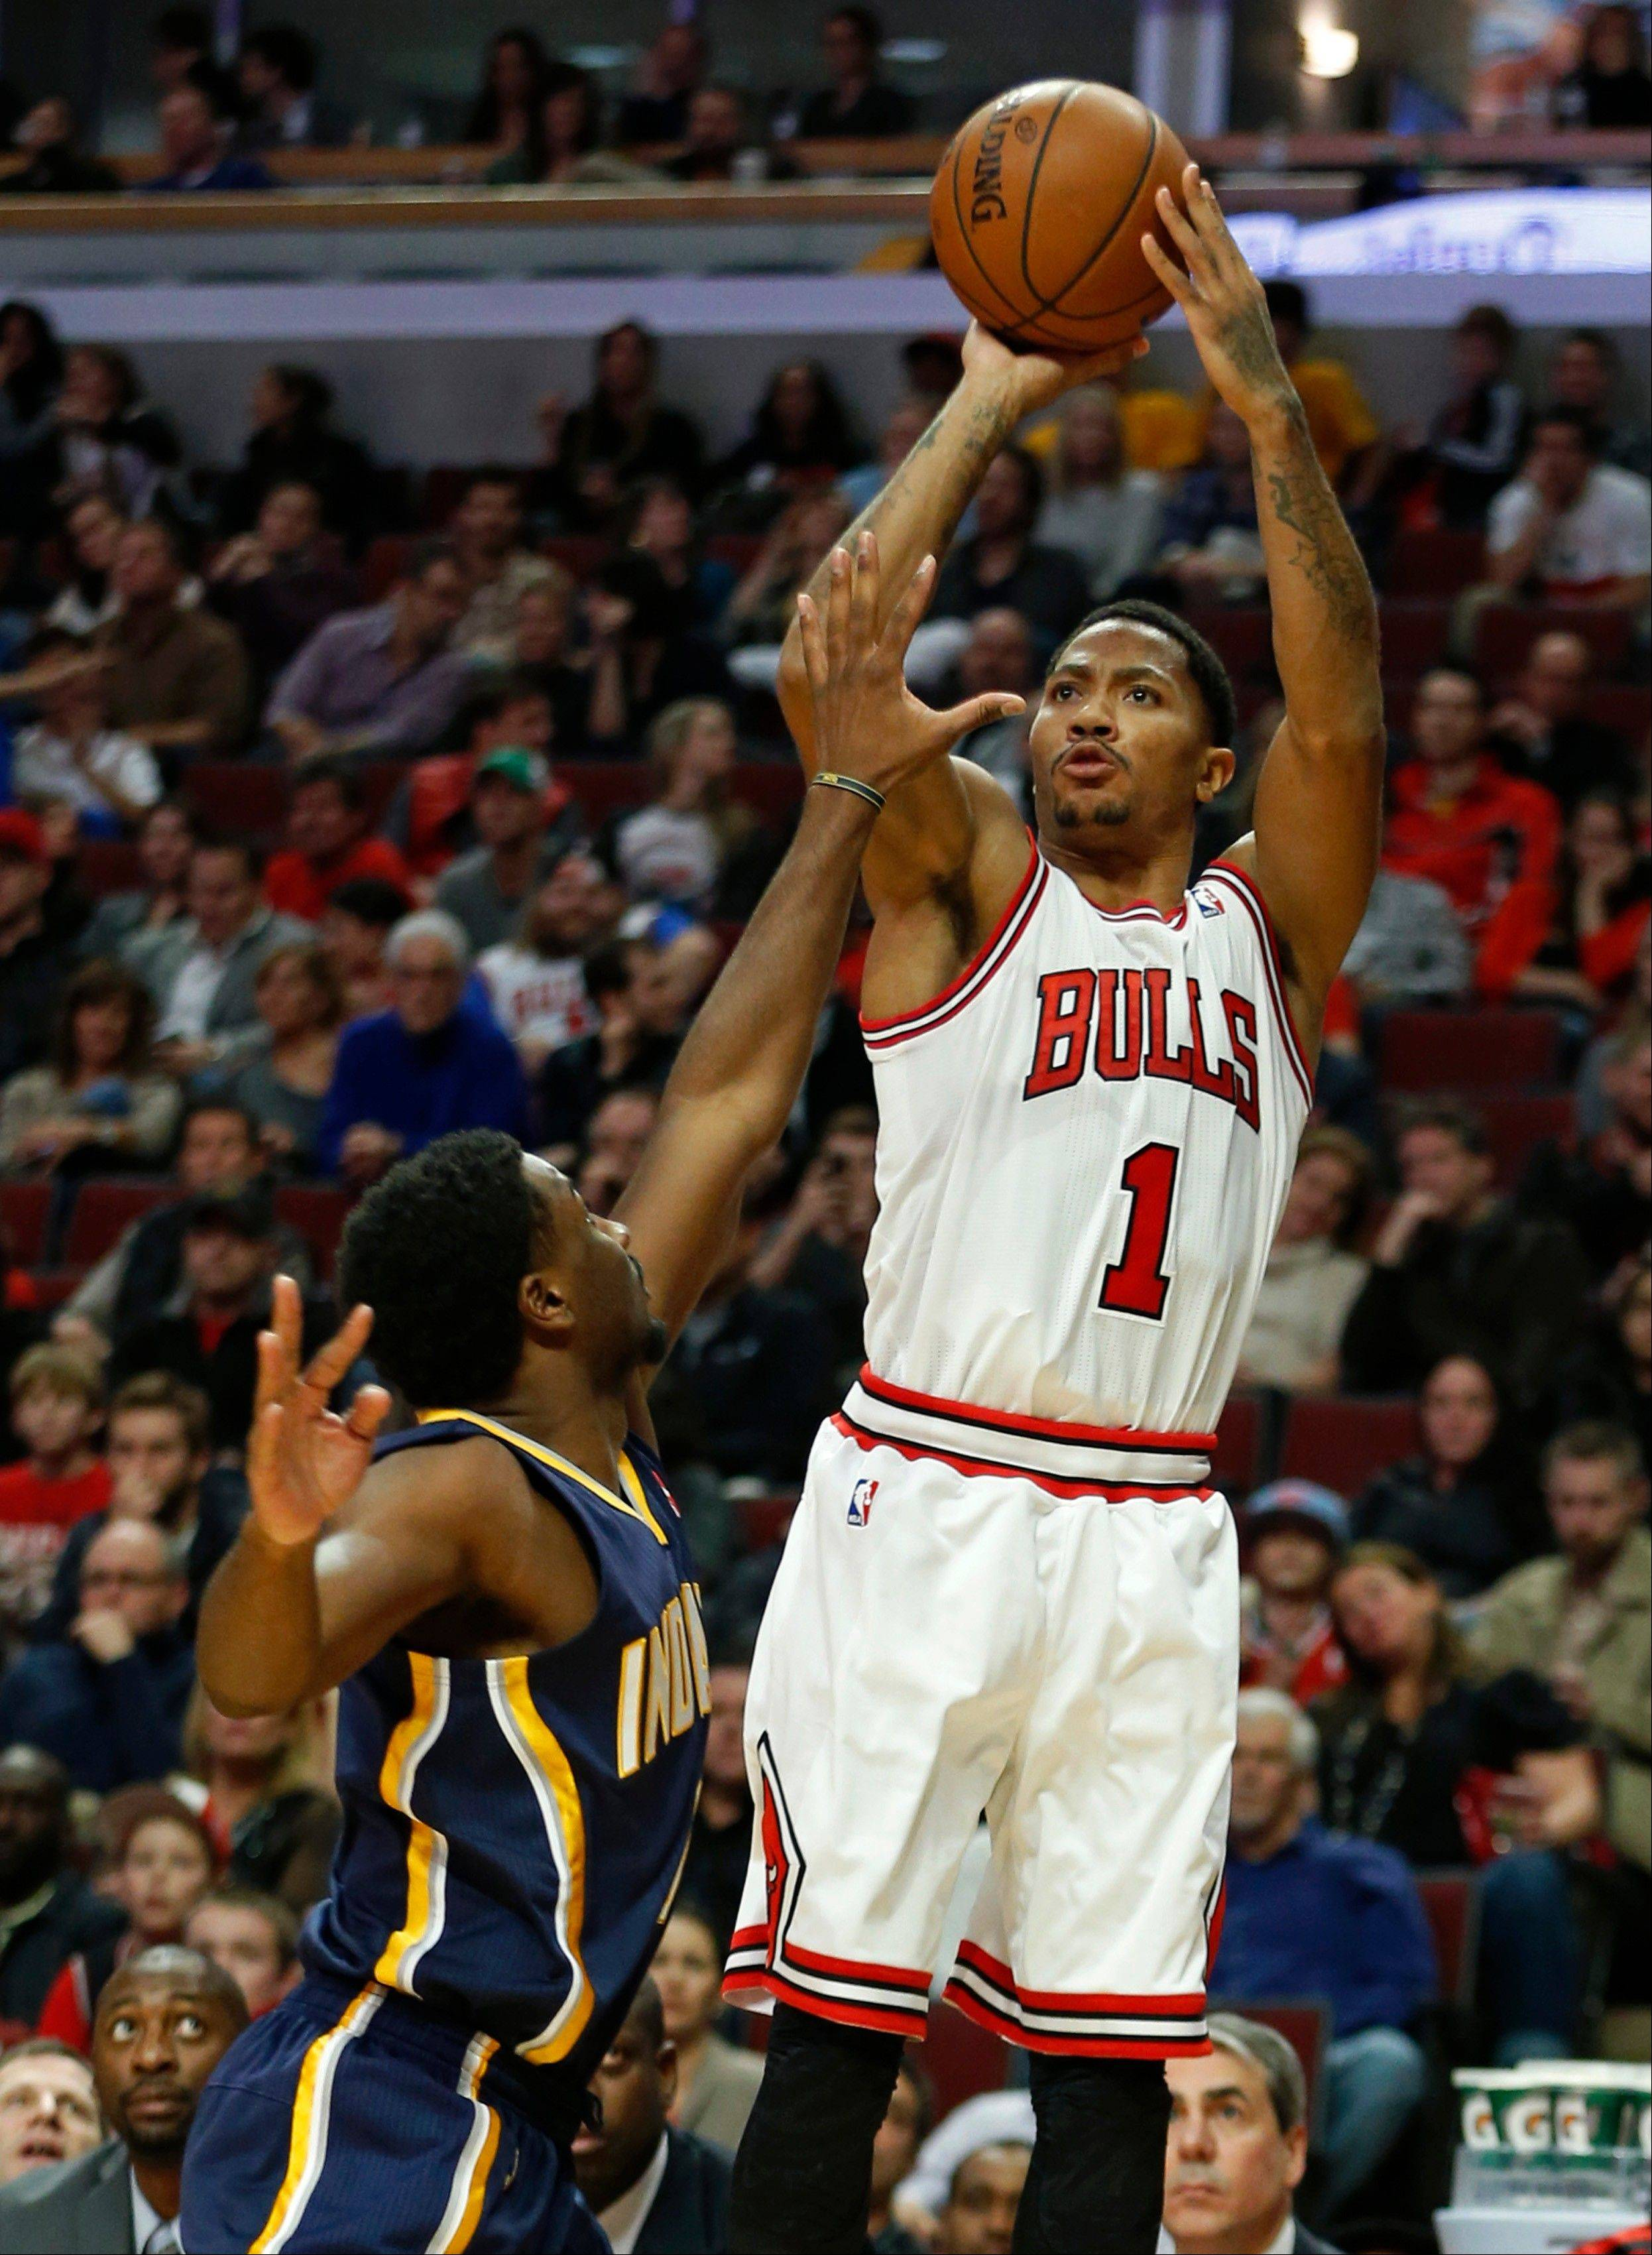 The Bulls' Derrick Rose went 6-for-11 on 3-pointers in Saturday night's rout of the previously unbeaten Pacers.